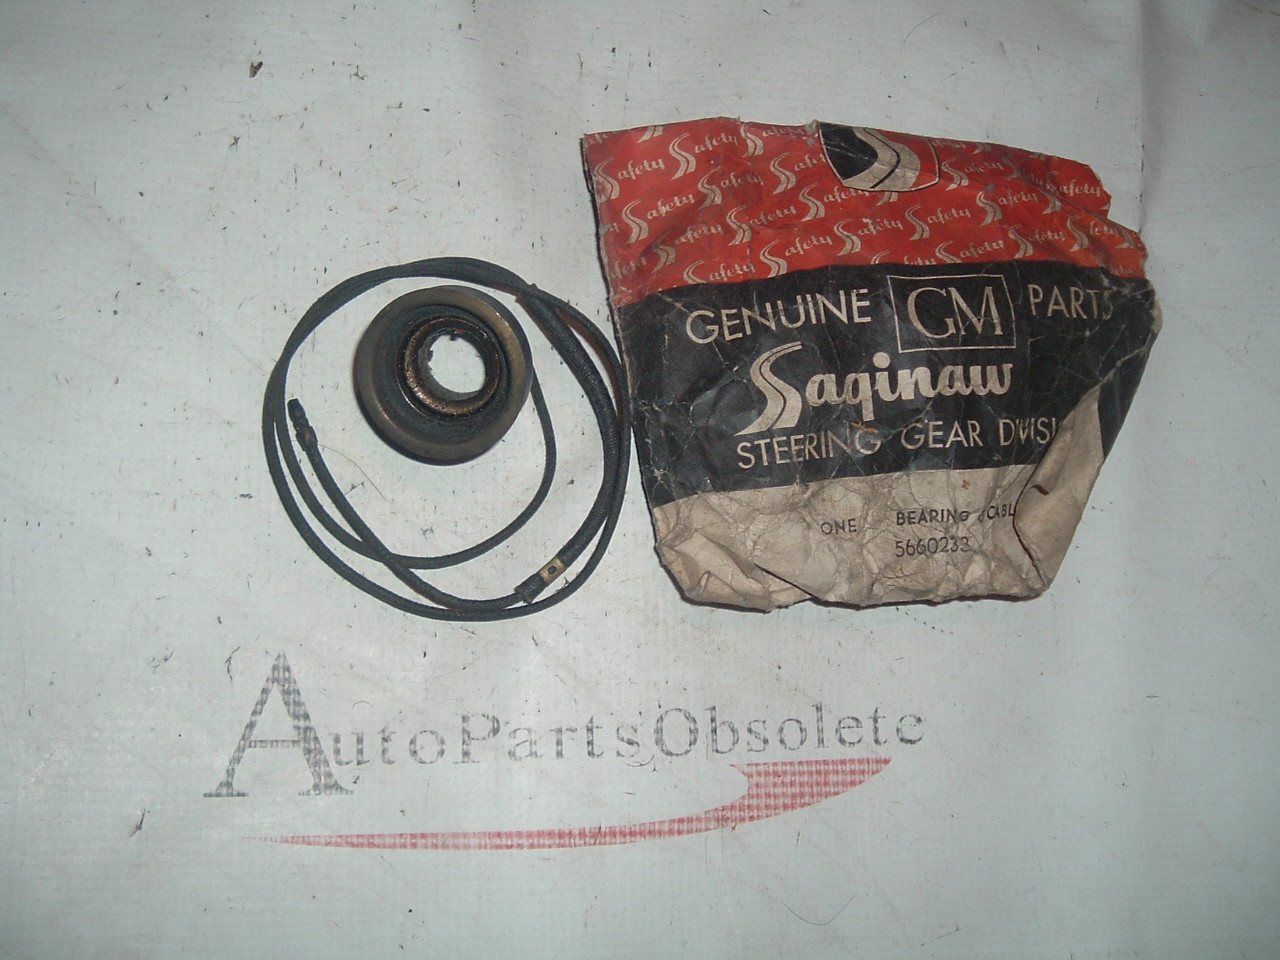 1949 51 53 55 57 59 62 chevrolet steering column bearing contact # 5660233 (z 5660233)